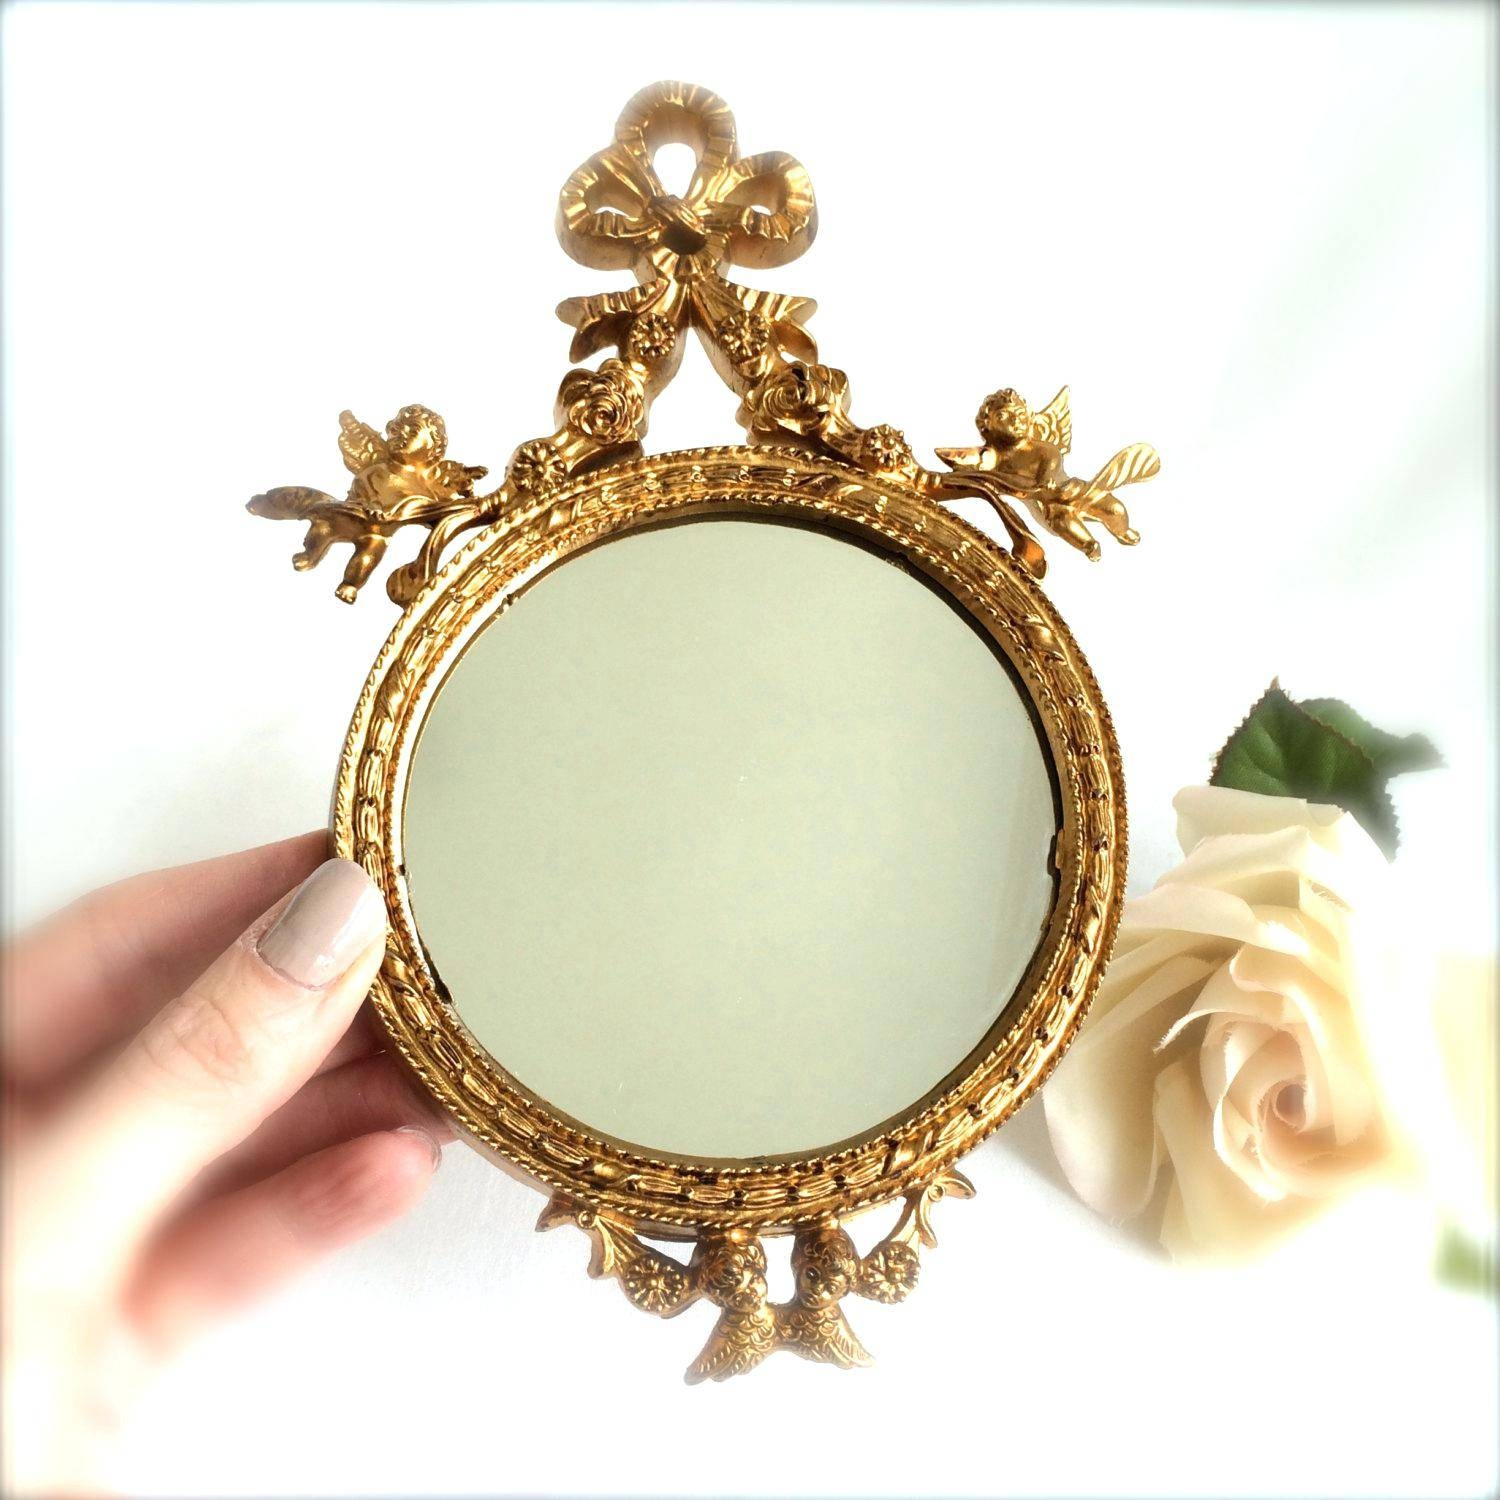 11 H Mirror Gold Oval Italian Vintage Decorative Upcycle Ornate Within Ornate Wall Mirrors (View 1 of 25)